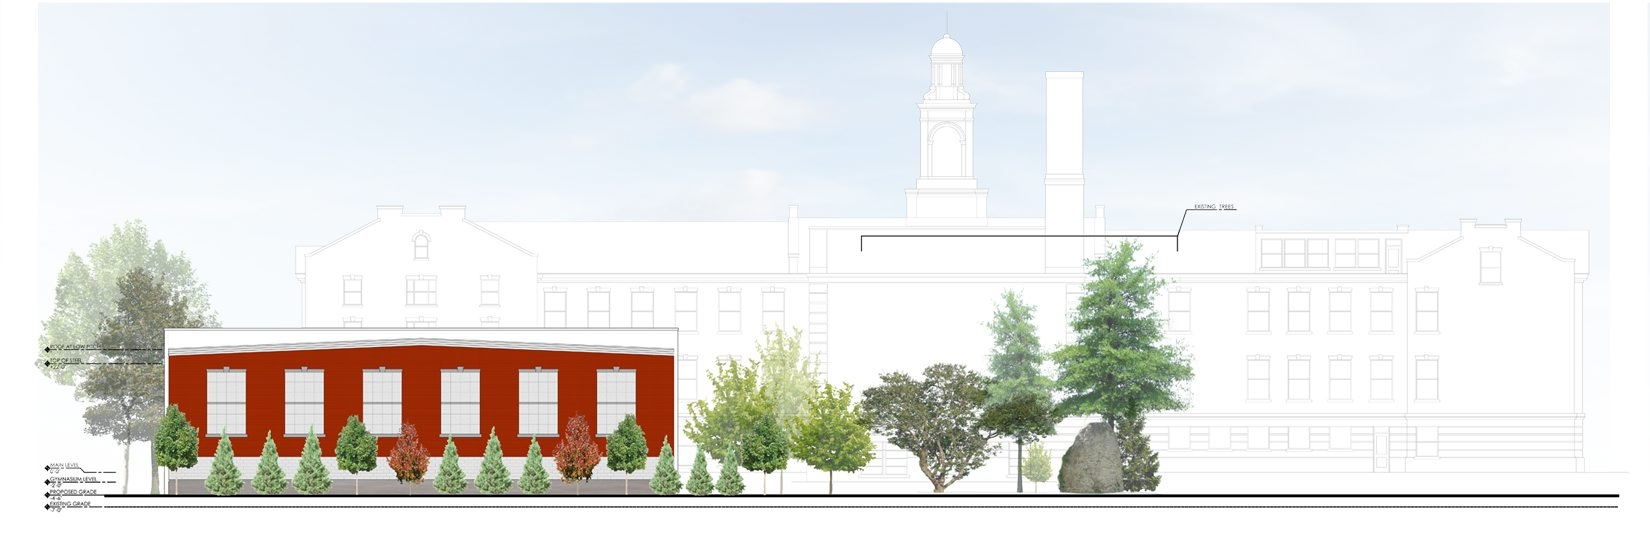 Construction has been allowed to resume on the new gym at Sacred Heart Academy, shown here in an architect's rendering.